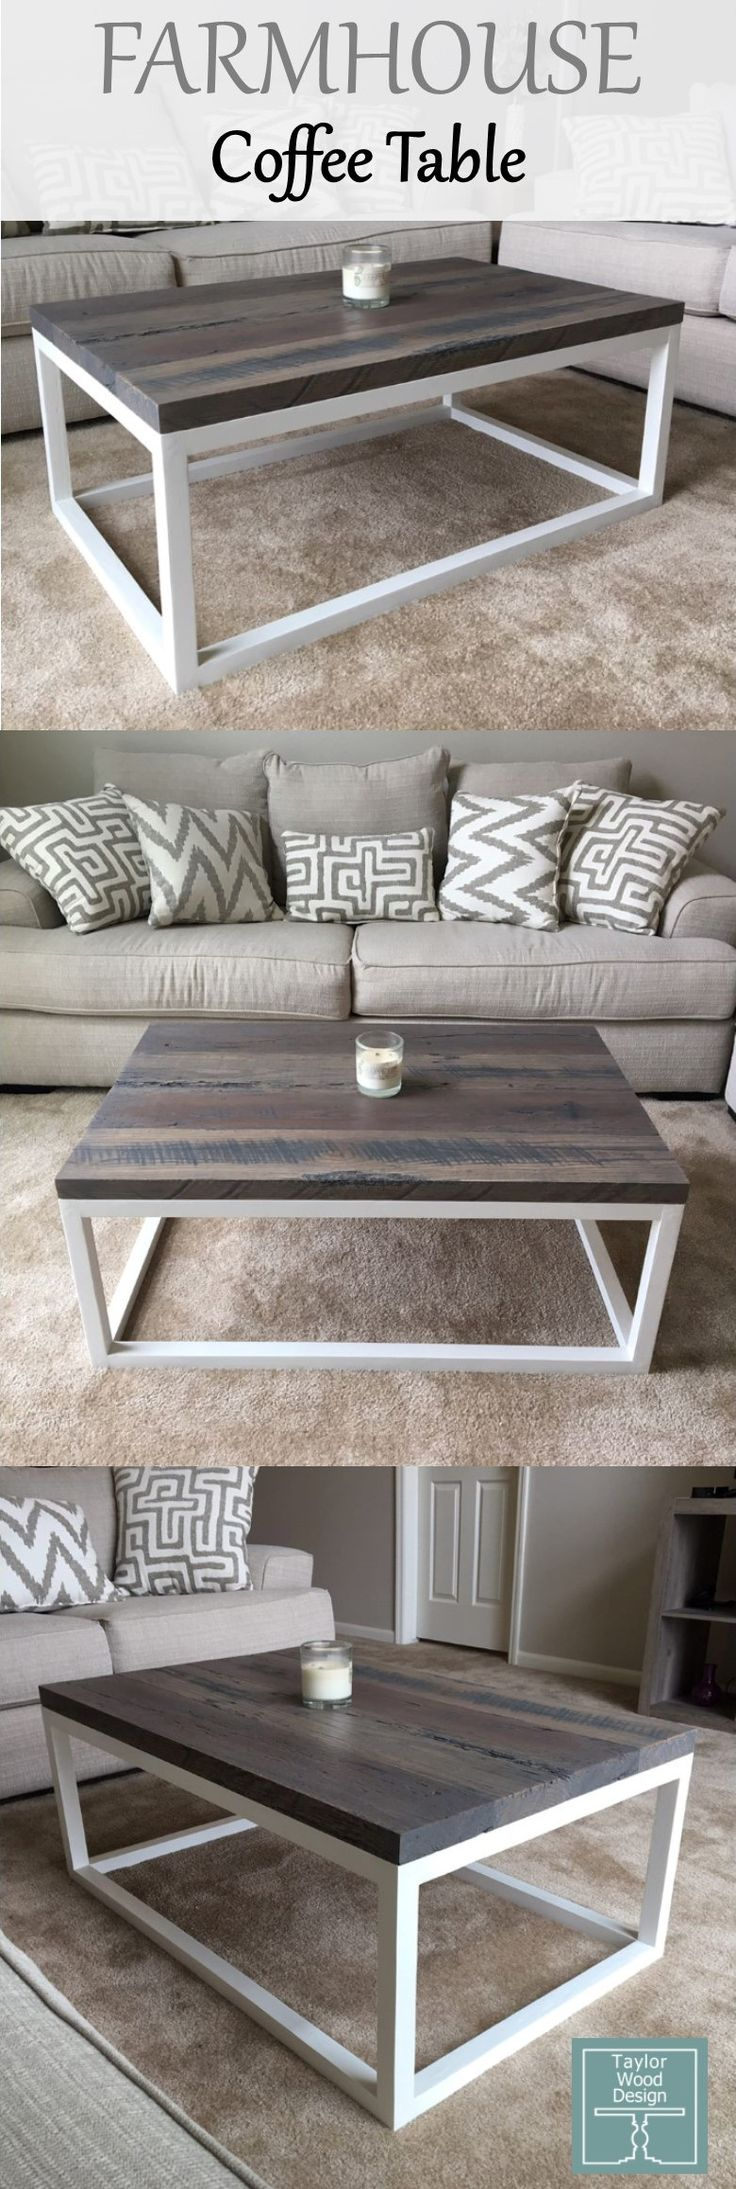 Our farmhouse coffee table we built from solid oak…